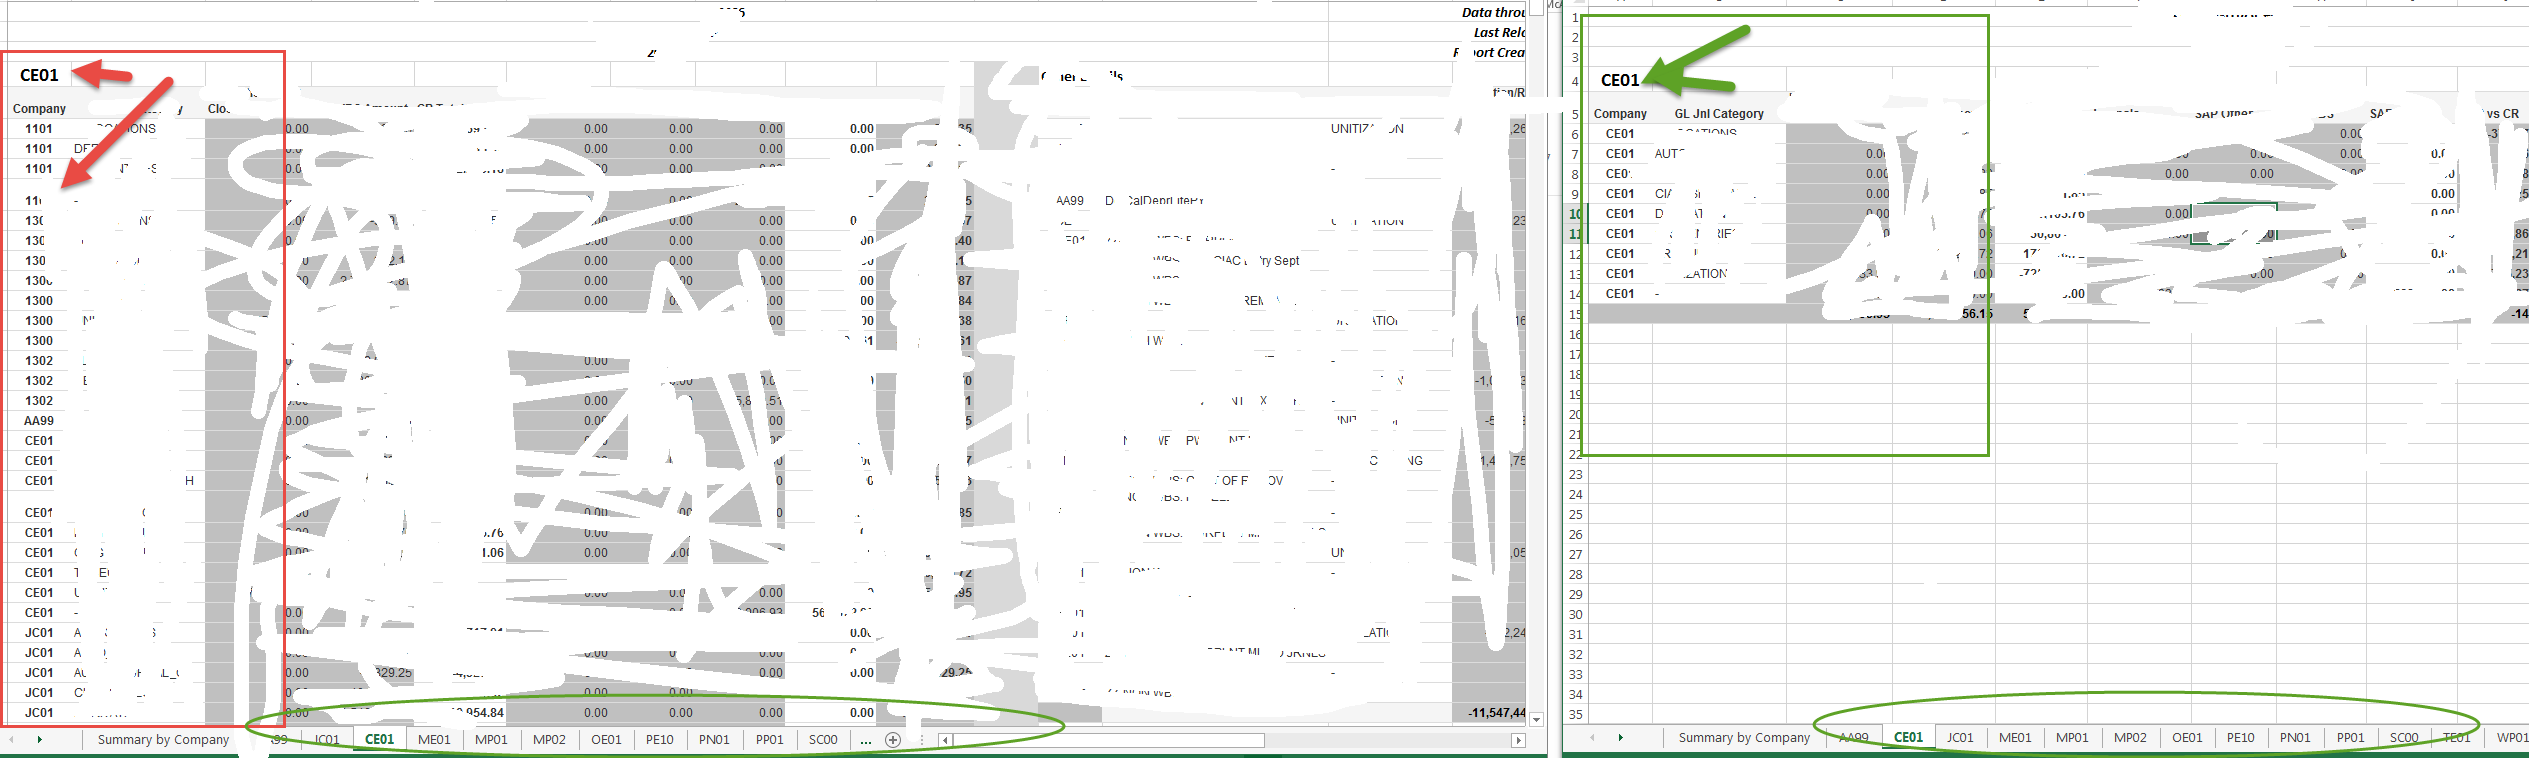 excel template issue.png